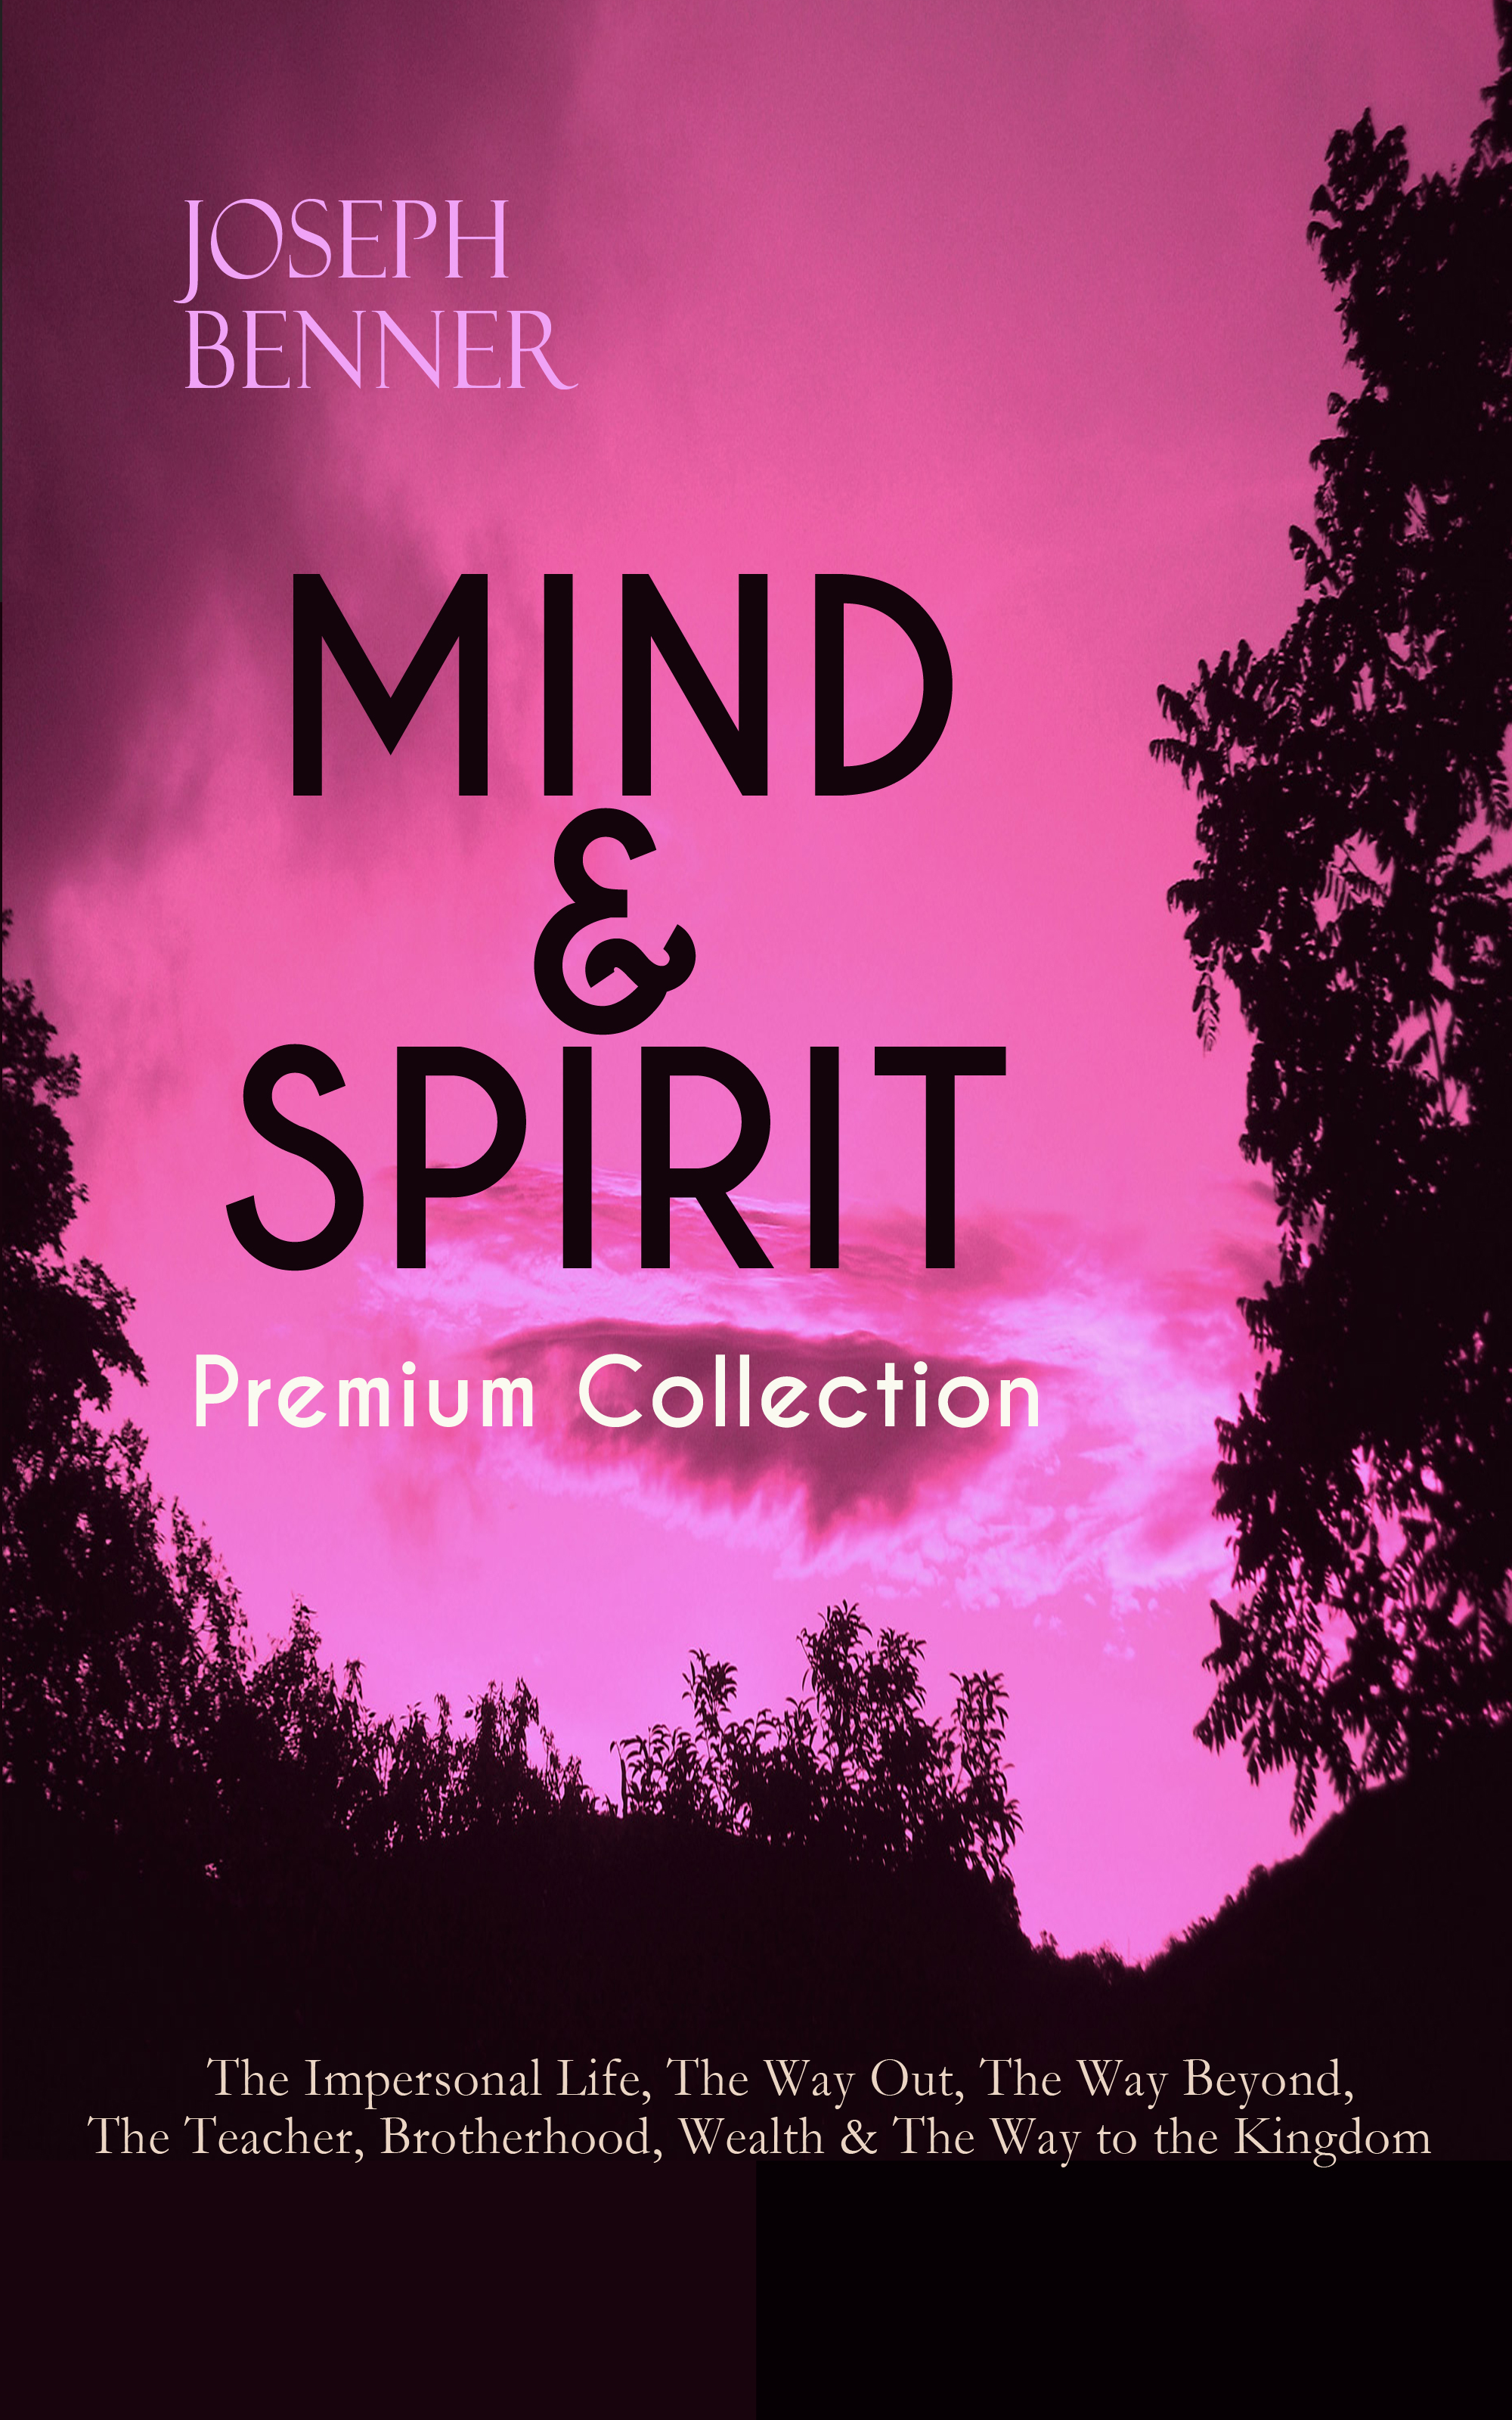 Joseph Benner MIND & SPIRIT Premium Collection: The Impersonal Life, The Way Out, The Way Beyond, The Teacher, Brotherhood, Wealth & The Way to the Kingdom топ спортивный eazy way eazy way mp002xw0zx2n